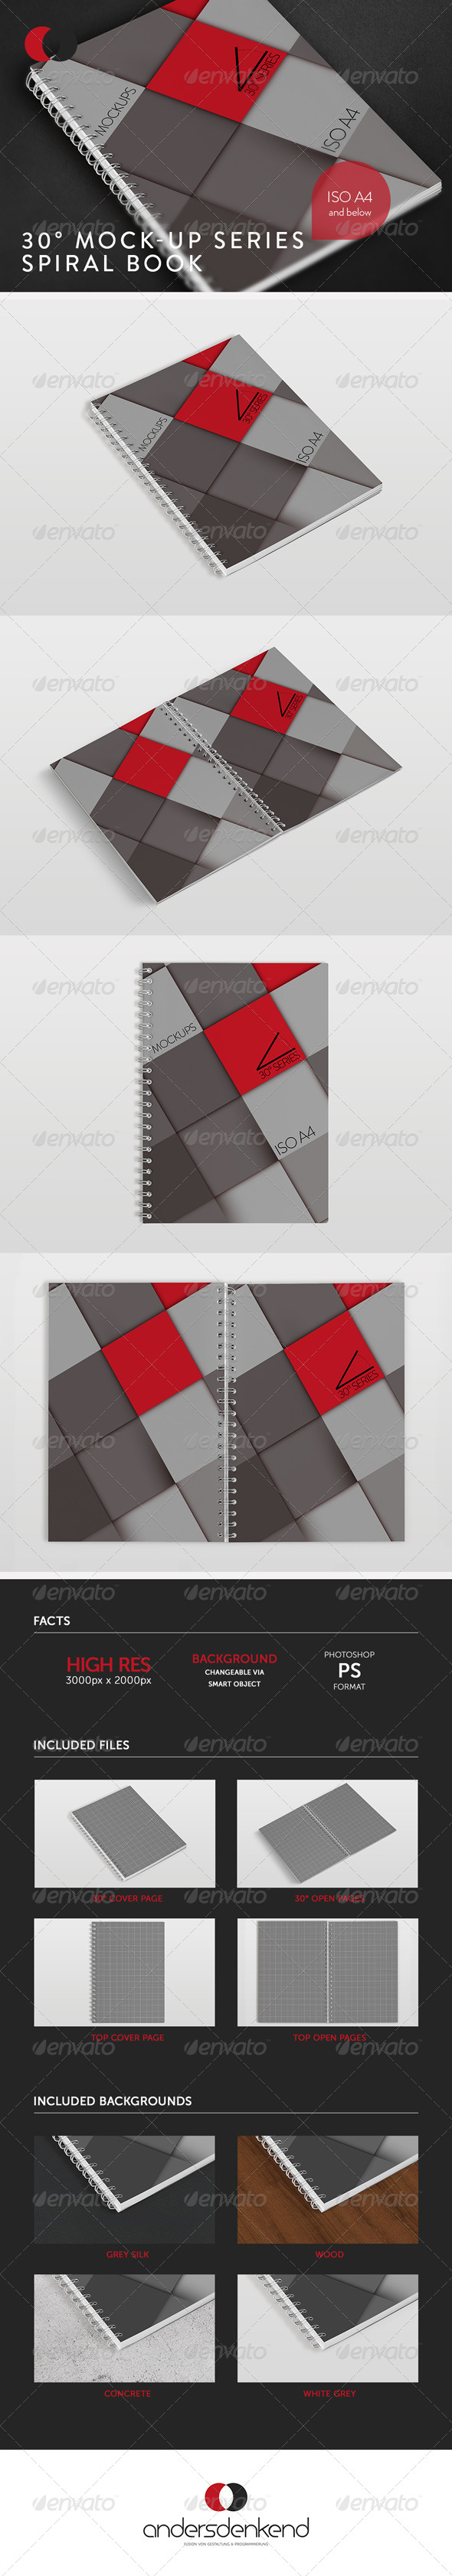 GraphicRiver 30Ўг Mock-Up Series Spiral Book 6141027